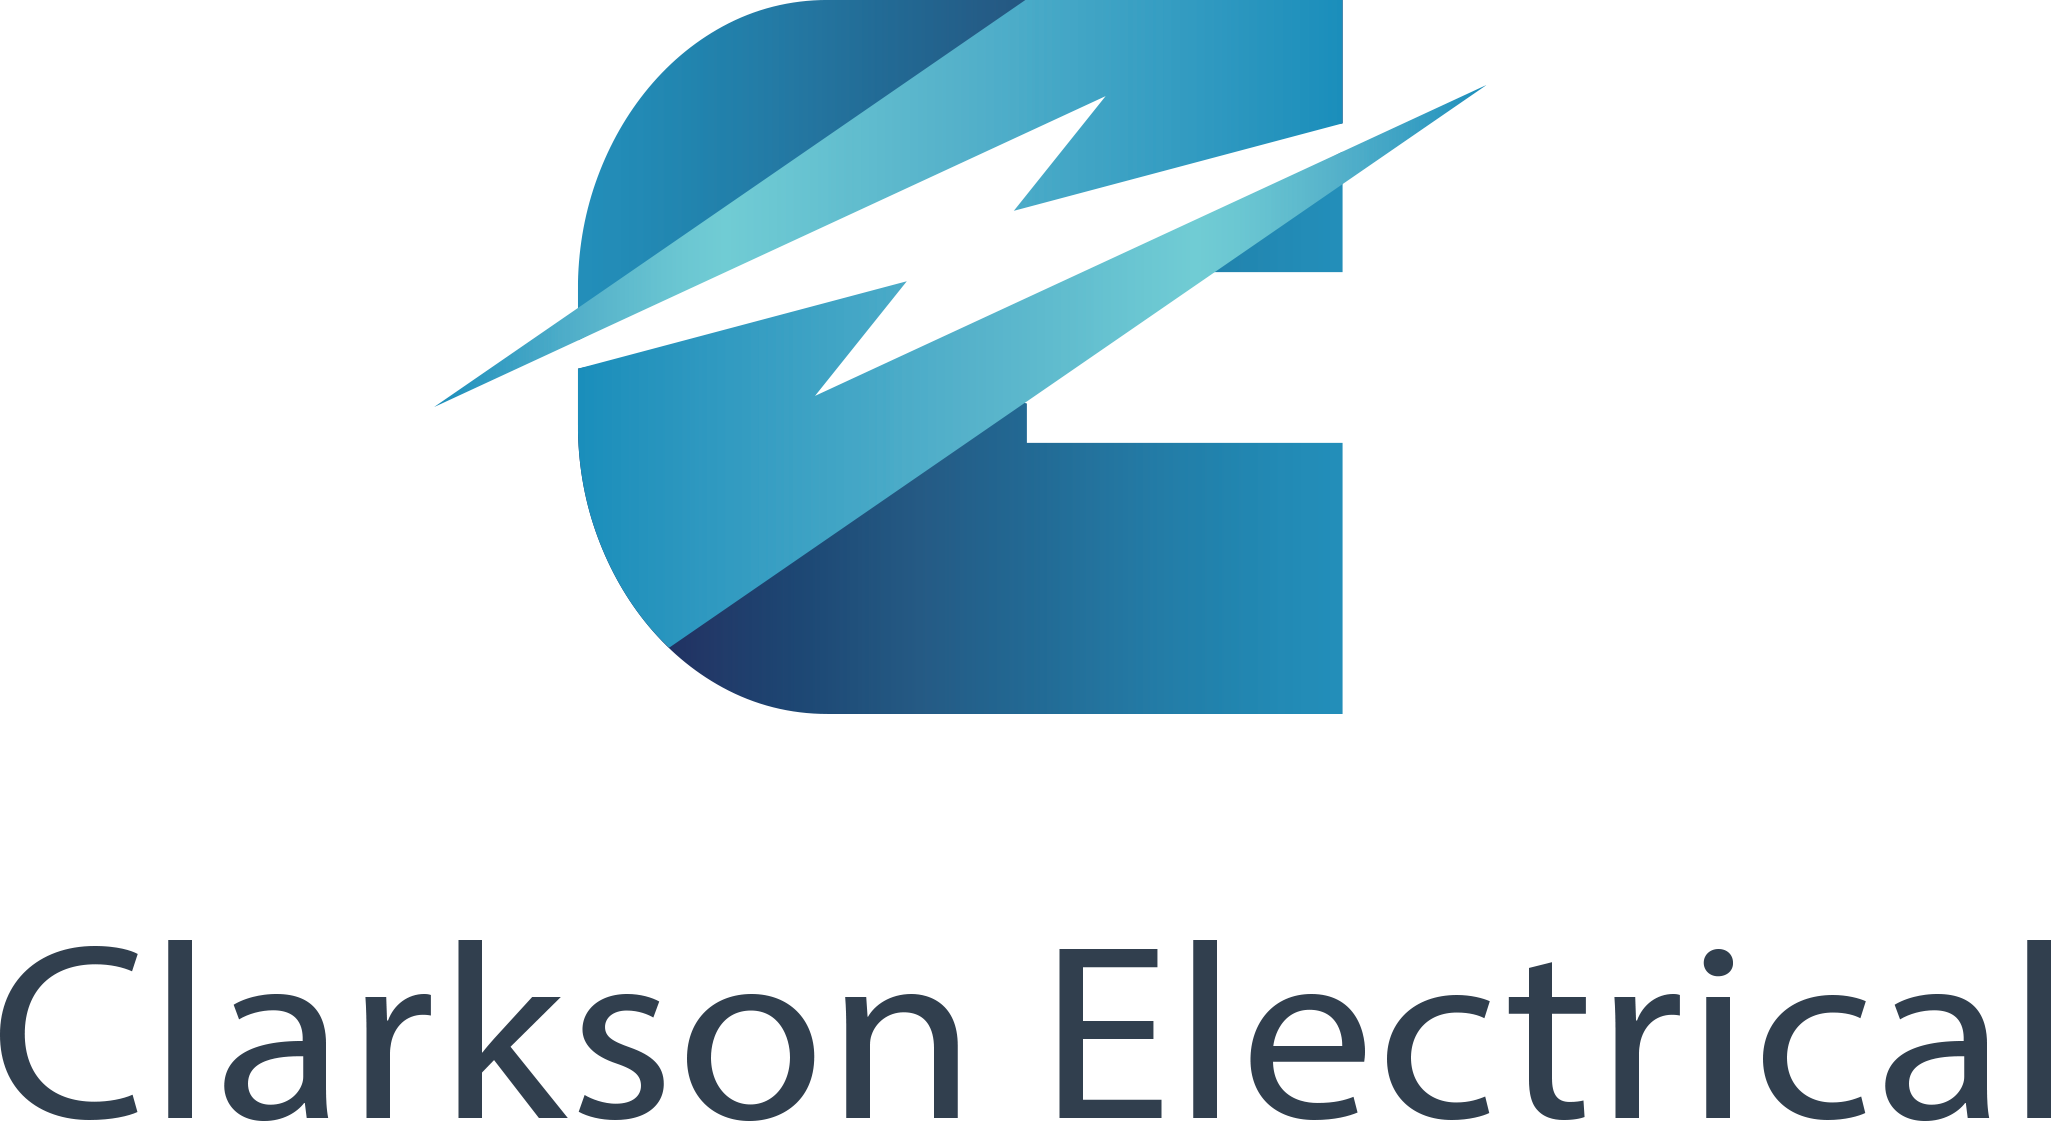 Clarkson Electrical